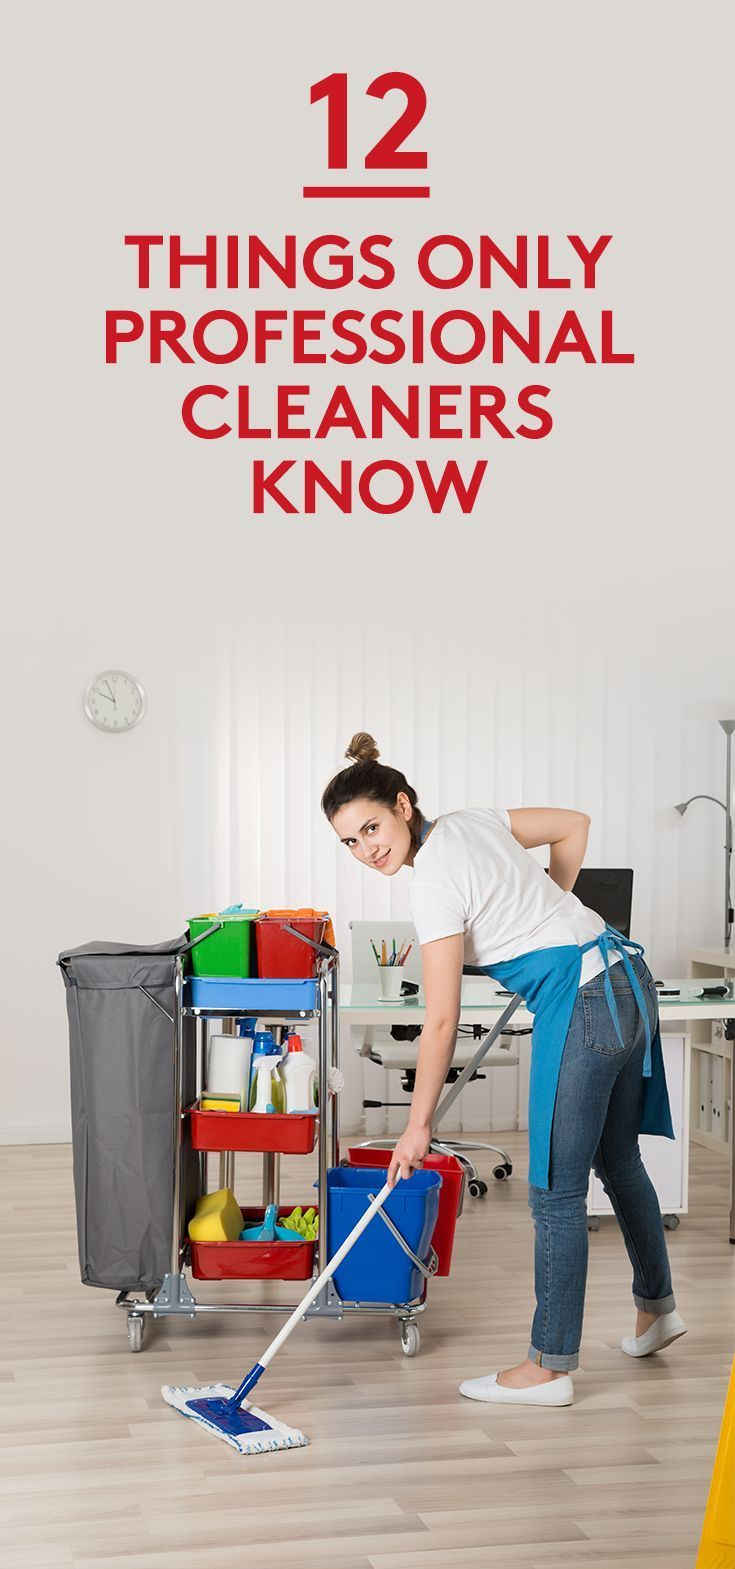 12 Things Only Professional Cleaners Know | A few of our favorite cleaning pros share some of their best tips for stubborn spots around the house. From stains in the laundry room to fingerprints on the refrigerator to the (dreaded!) toilet bowl, they have